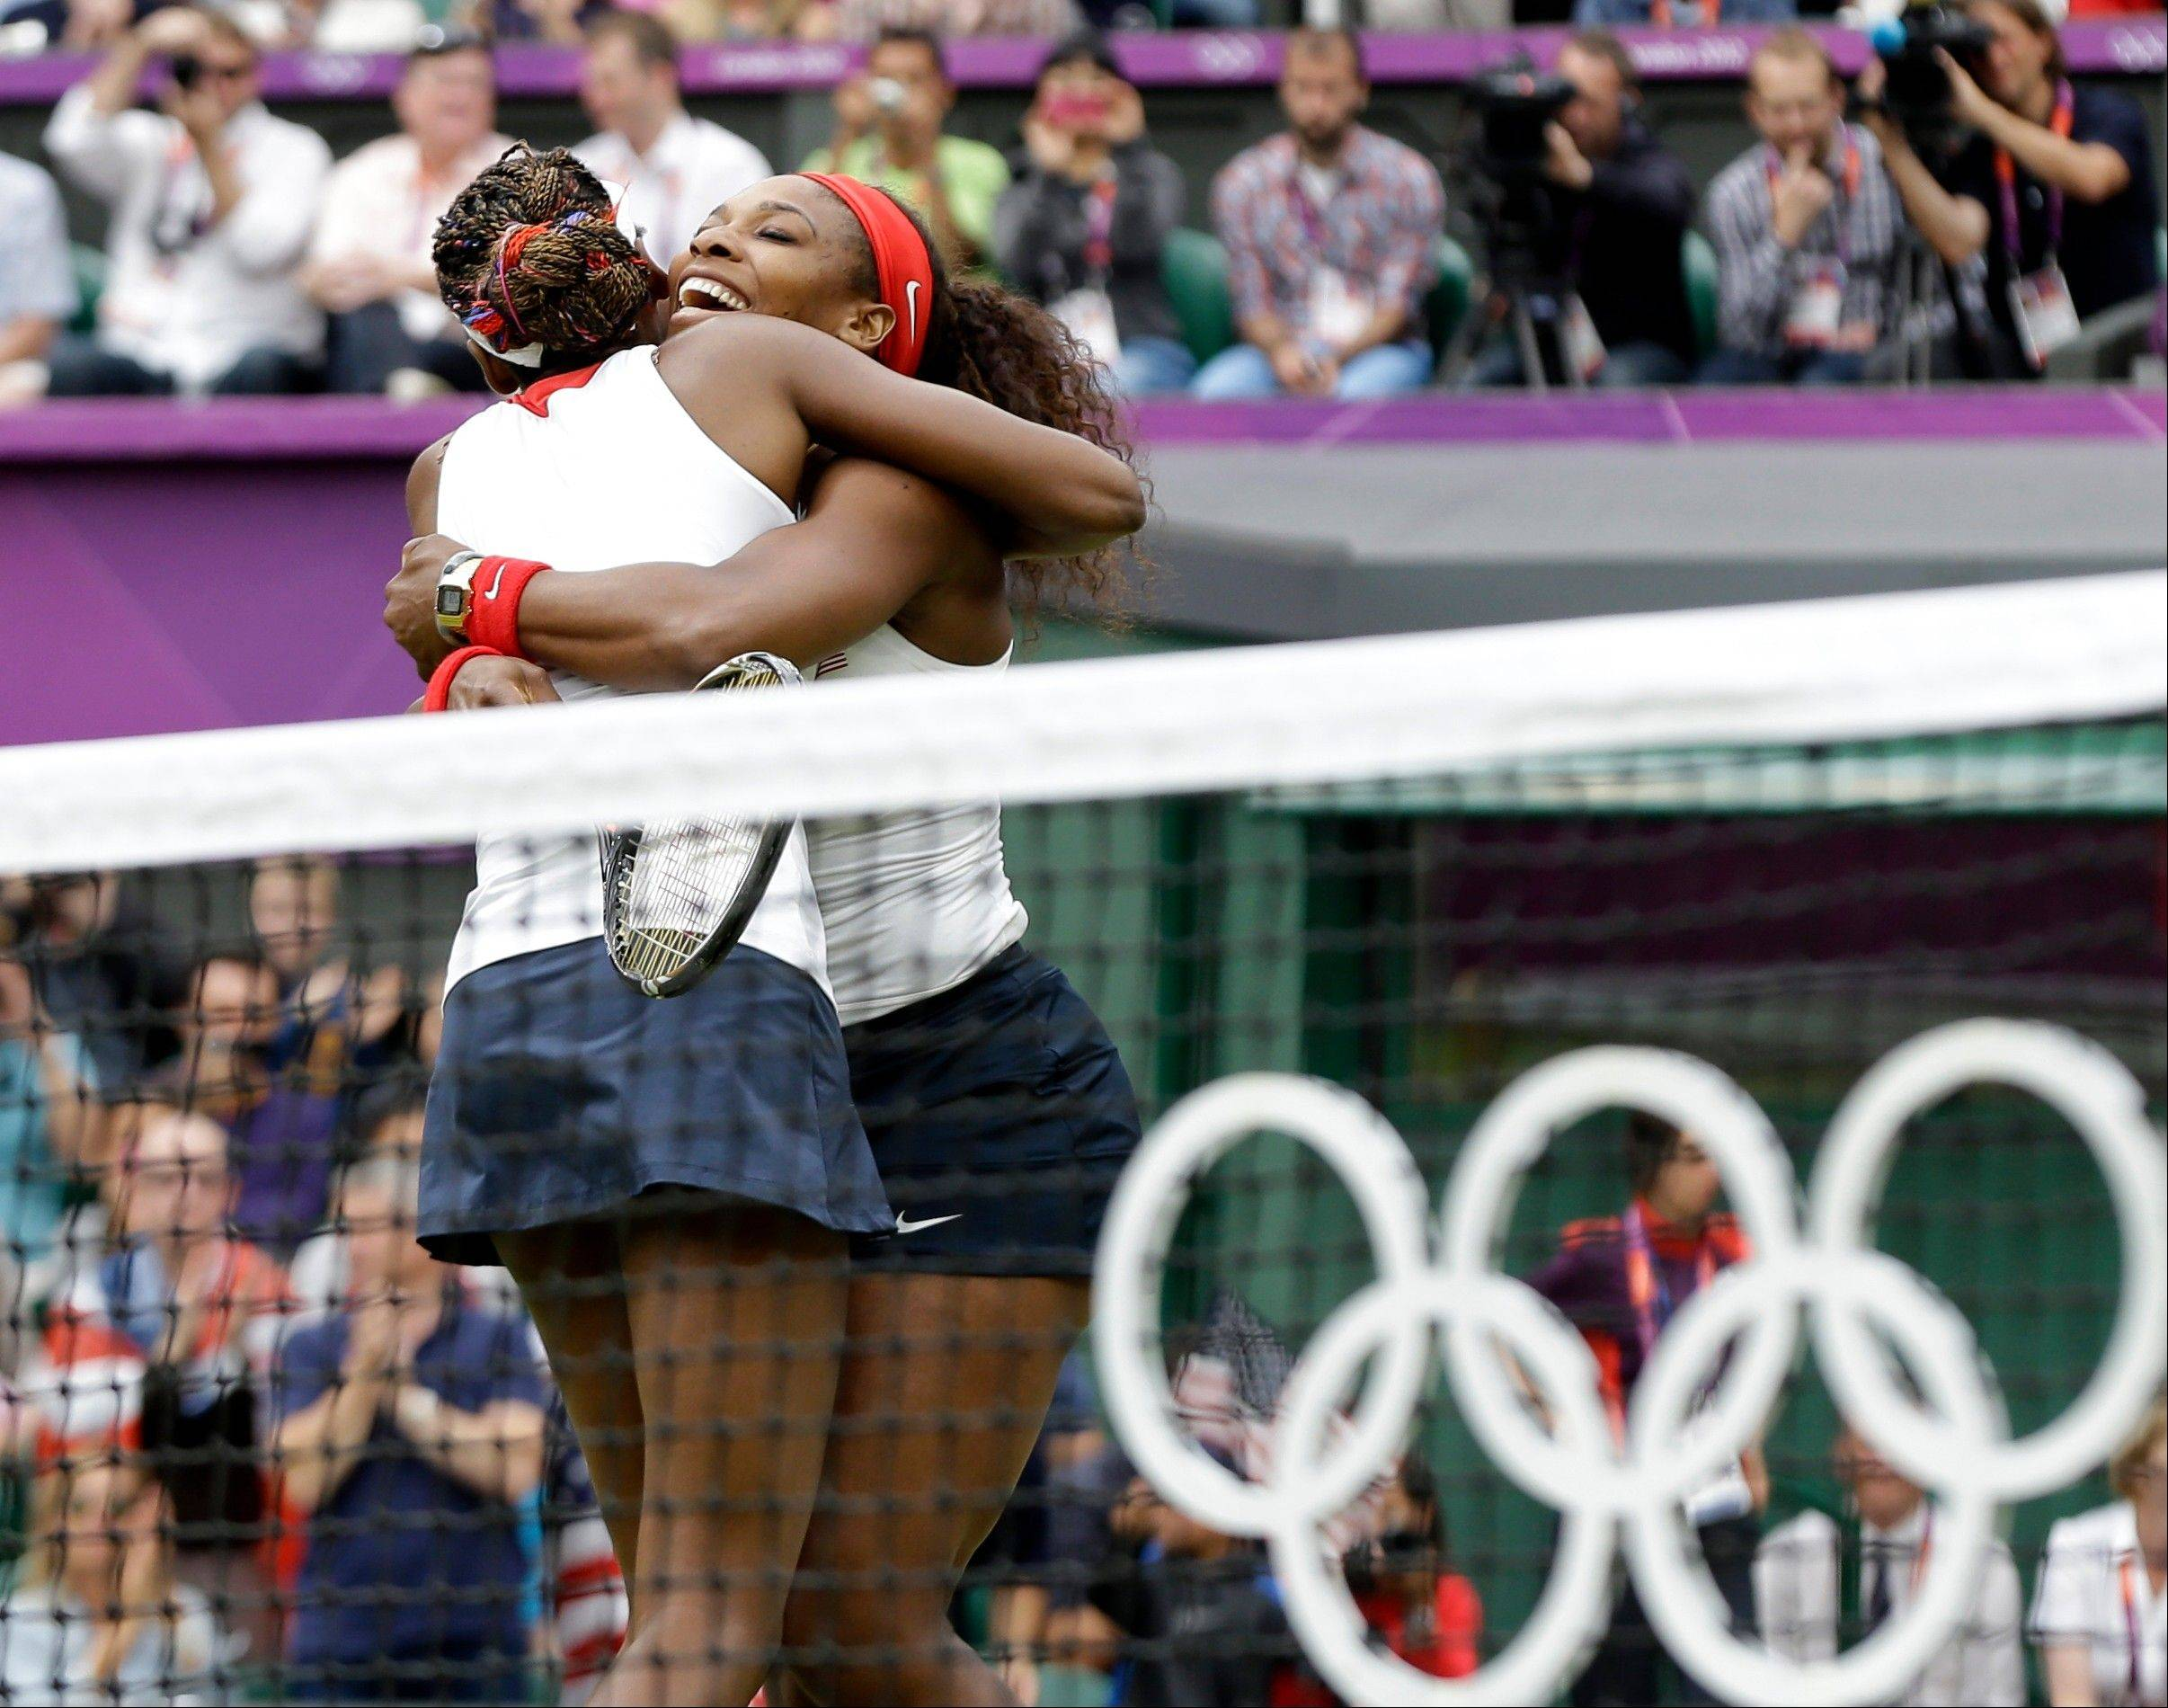 Serena Williams, right, and Venus Williams of the United States celebrate their victory against Andrea Hlavackova and Lucie Hradecka of the Czech Republic in the gold medal women's doubles match at the All England Lawn Tennis Club in Wimbledon, London at the 2012 Summer Olympics, Sunday, Aug. 5, 2012.